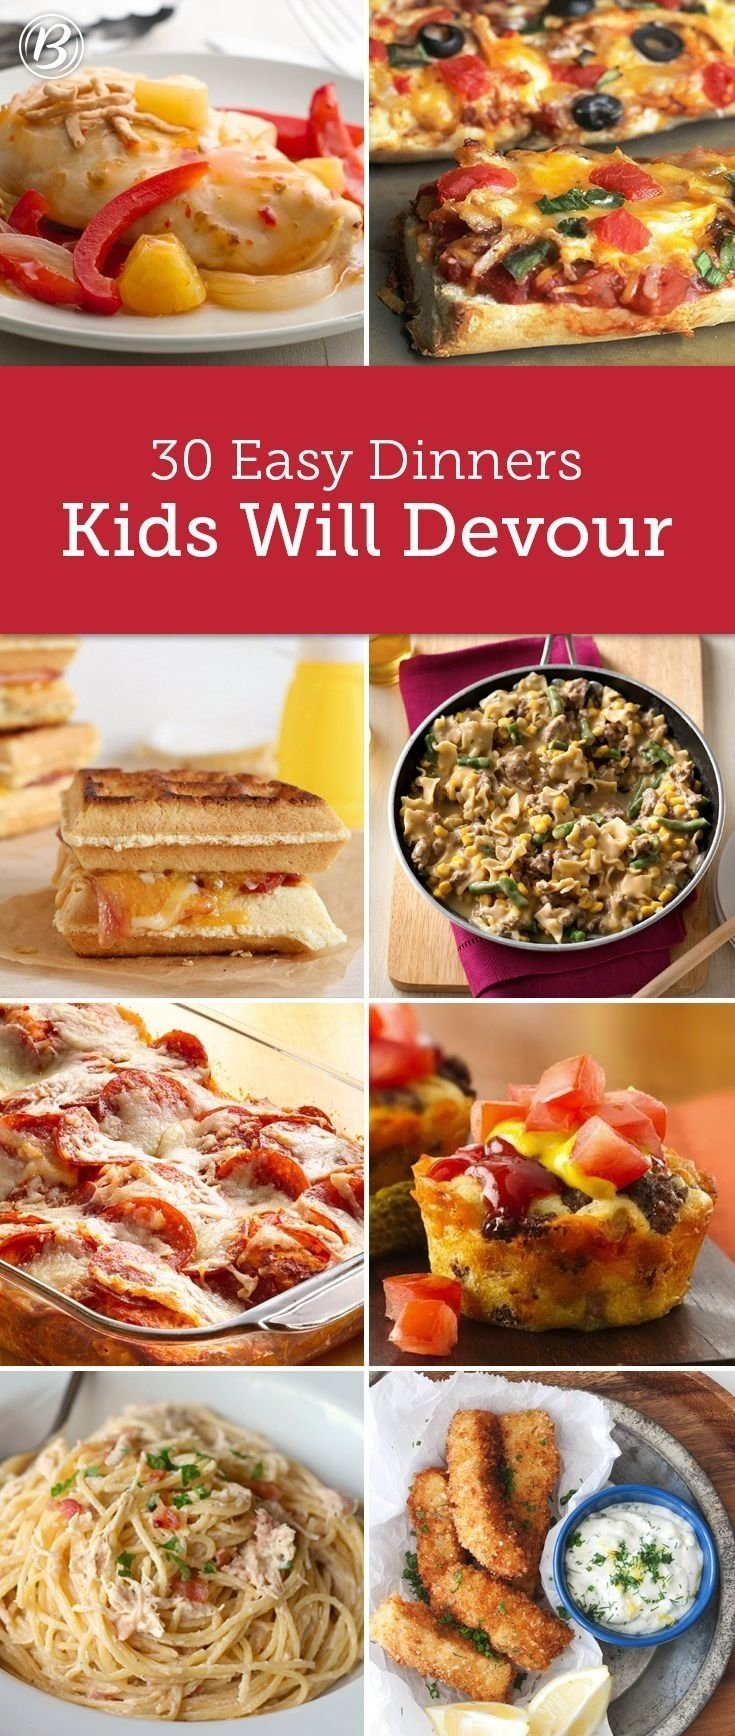 10 Fabulous Easy Dinner Ideas For Picky Eaters 70 best food ideas for toddlers images on pinterest toddler food 1 2021